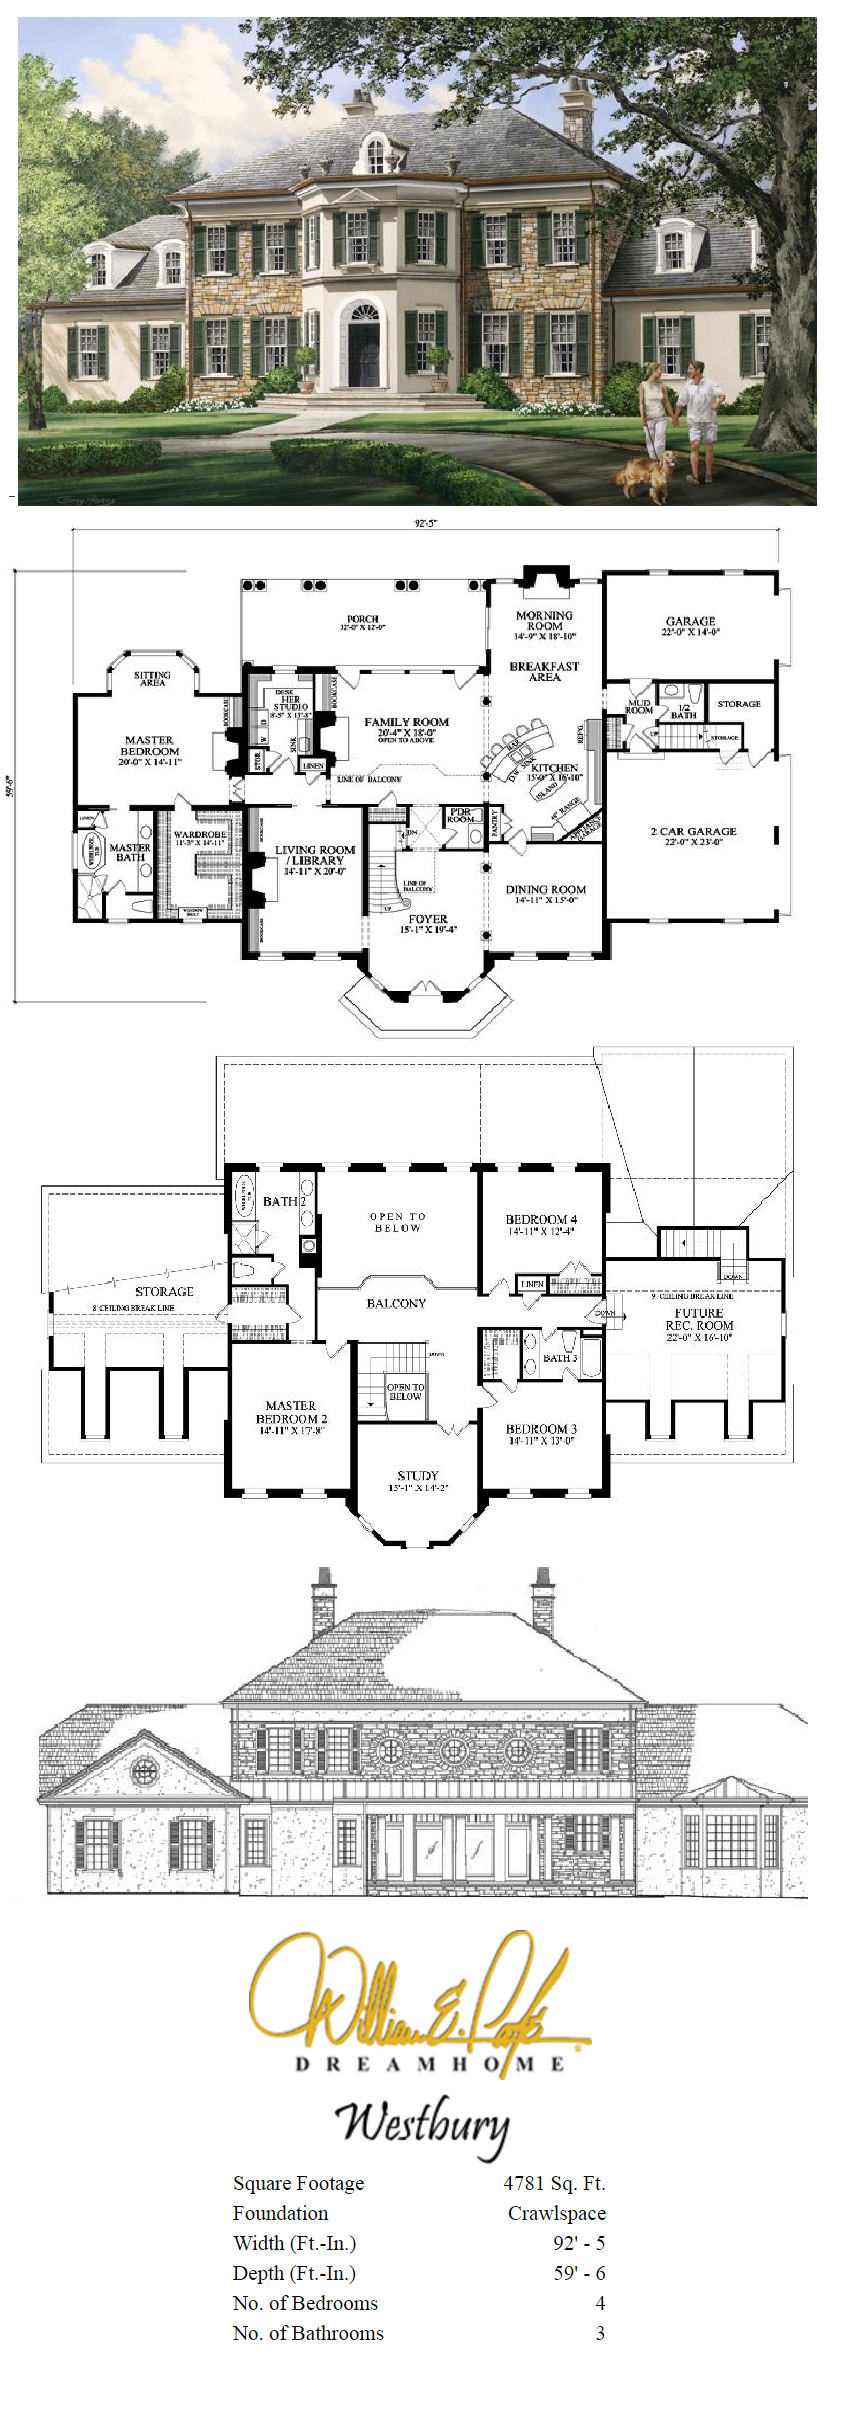 Westbury Perspective With Plans William E Poole Dream Home Sims 4 House Plans Sims House Plans Sims House Design